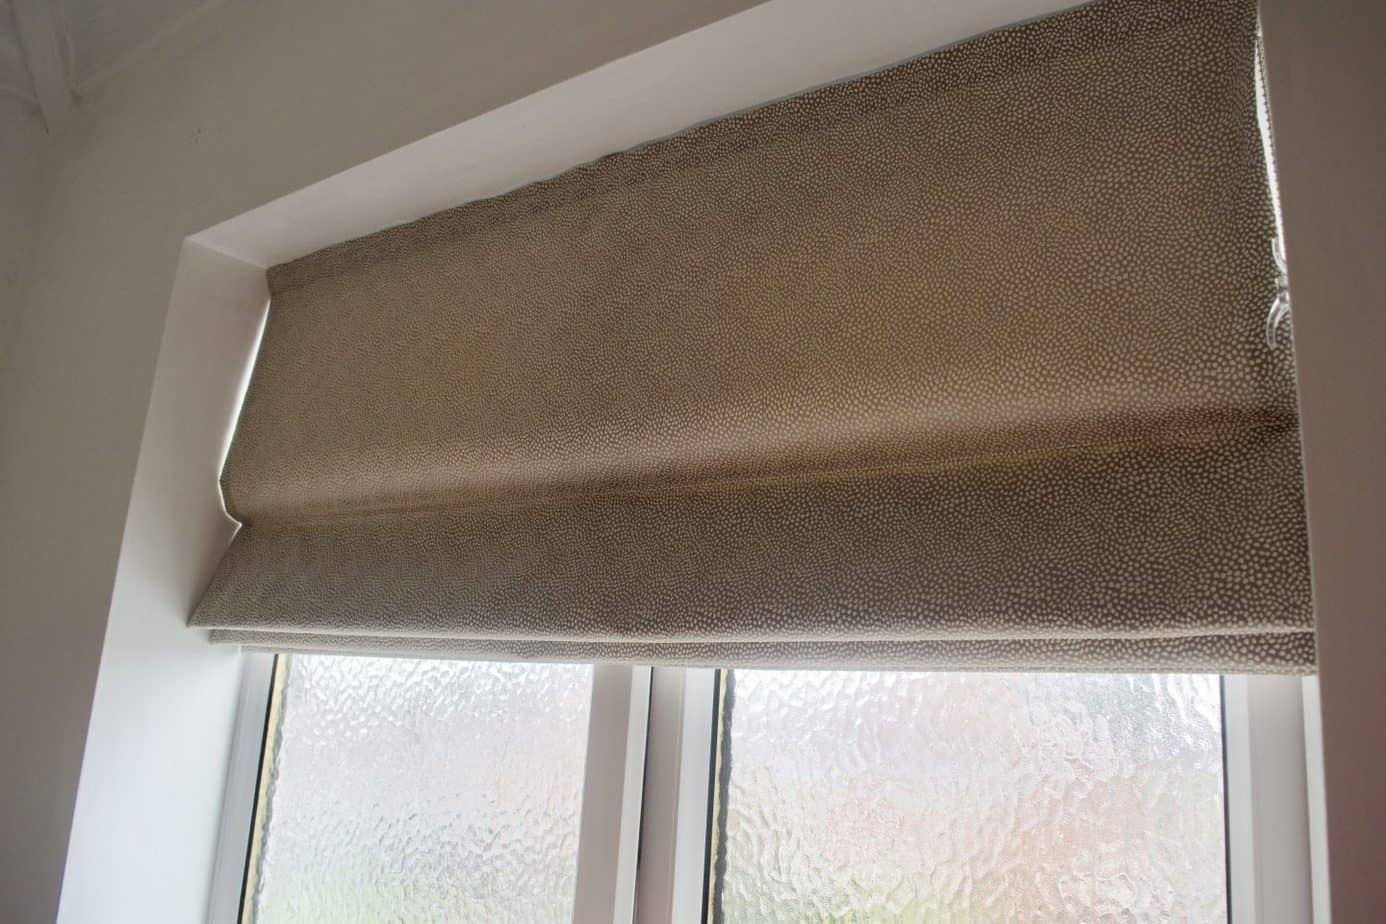 Make my blinds roller blind for the bathroom